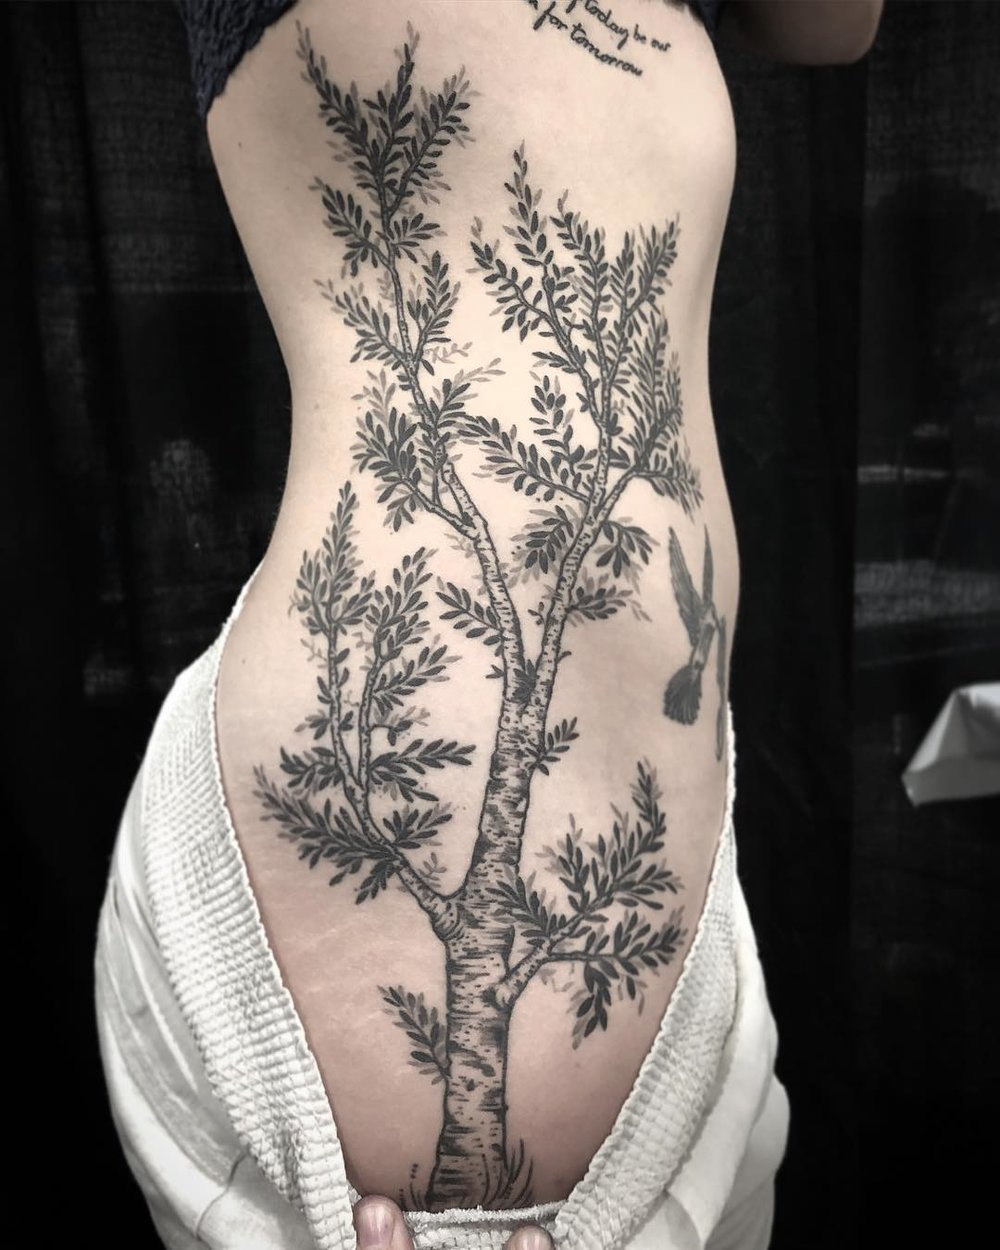 cody-philpott-treetattoo-blacktattoo-girltattoo.jpg